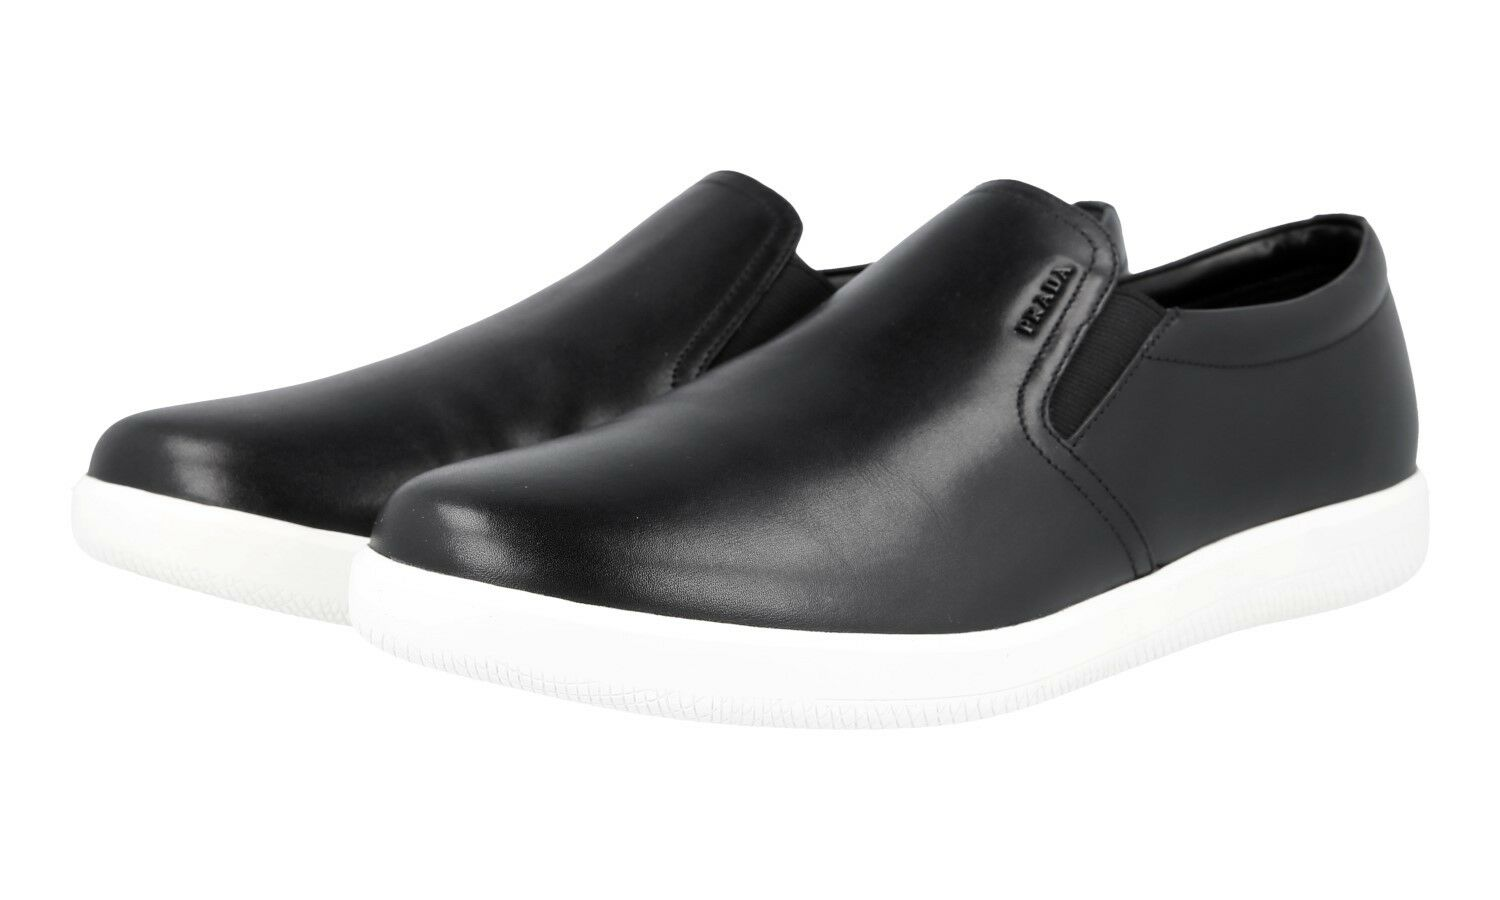 shoes PRADA LUSSO 4D2776 black NUOVE 7 41 41,5